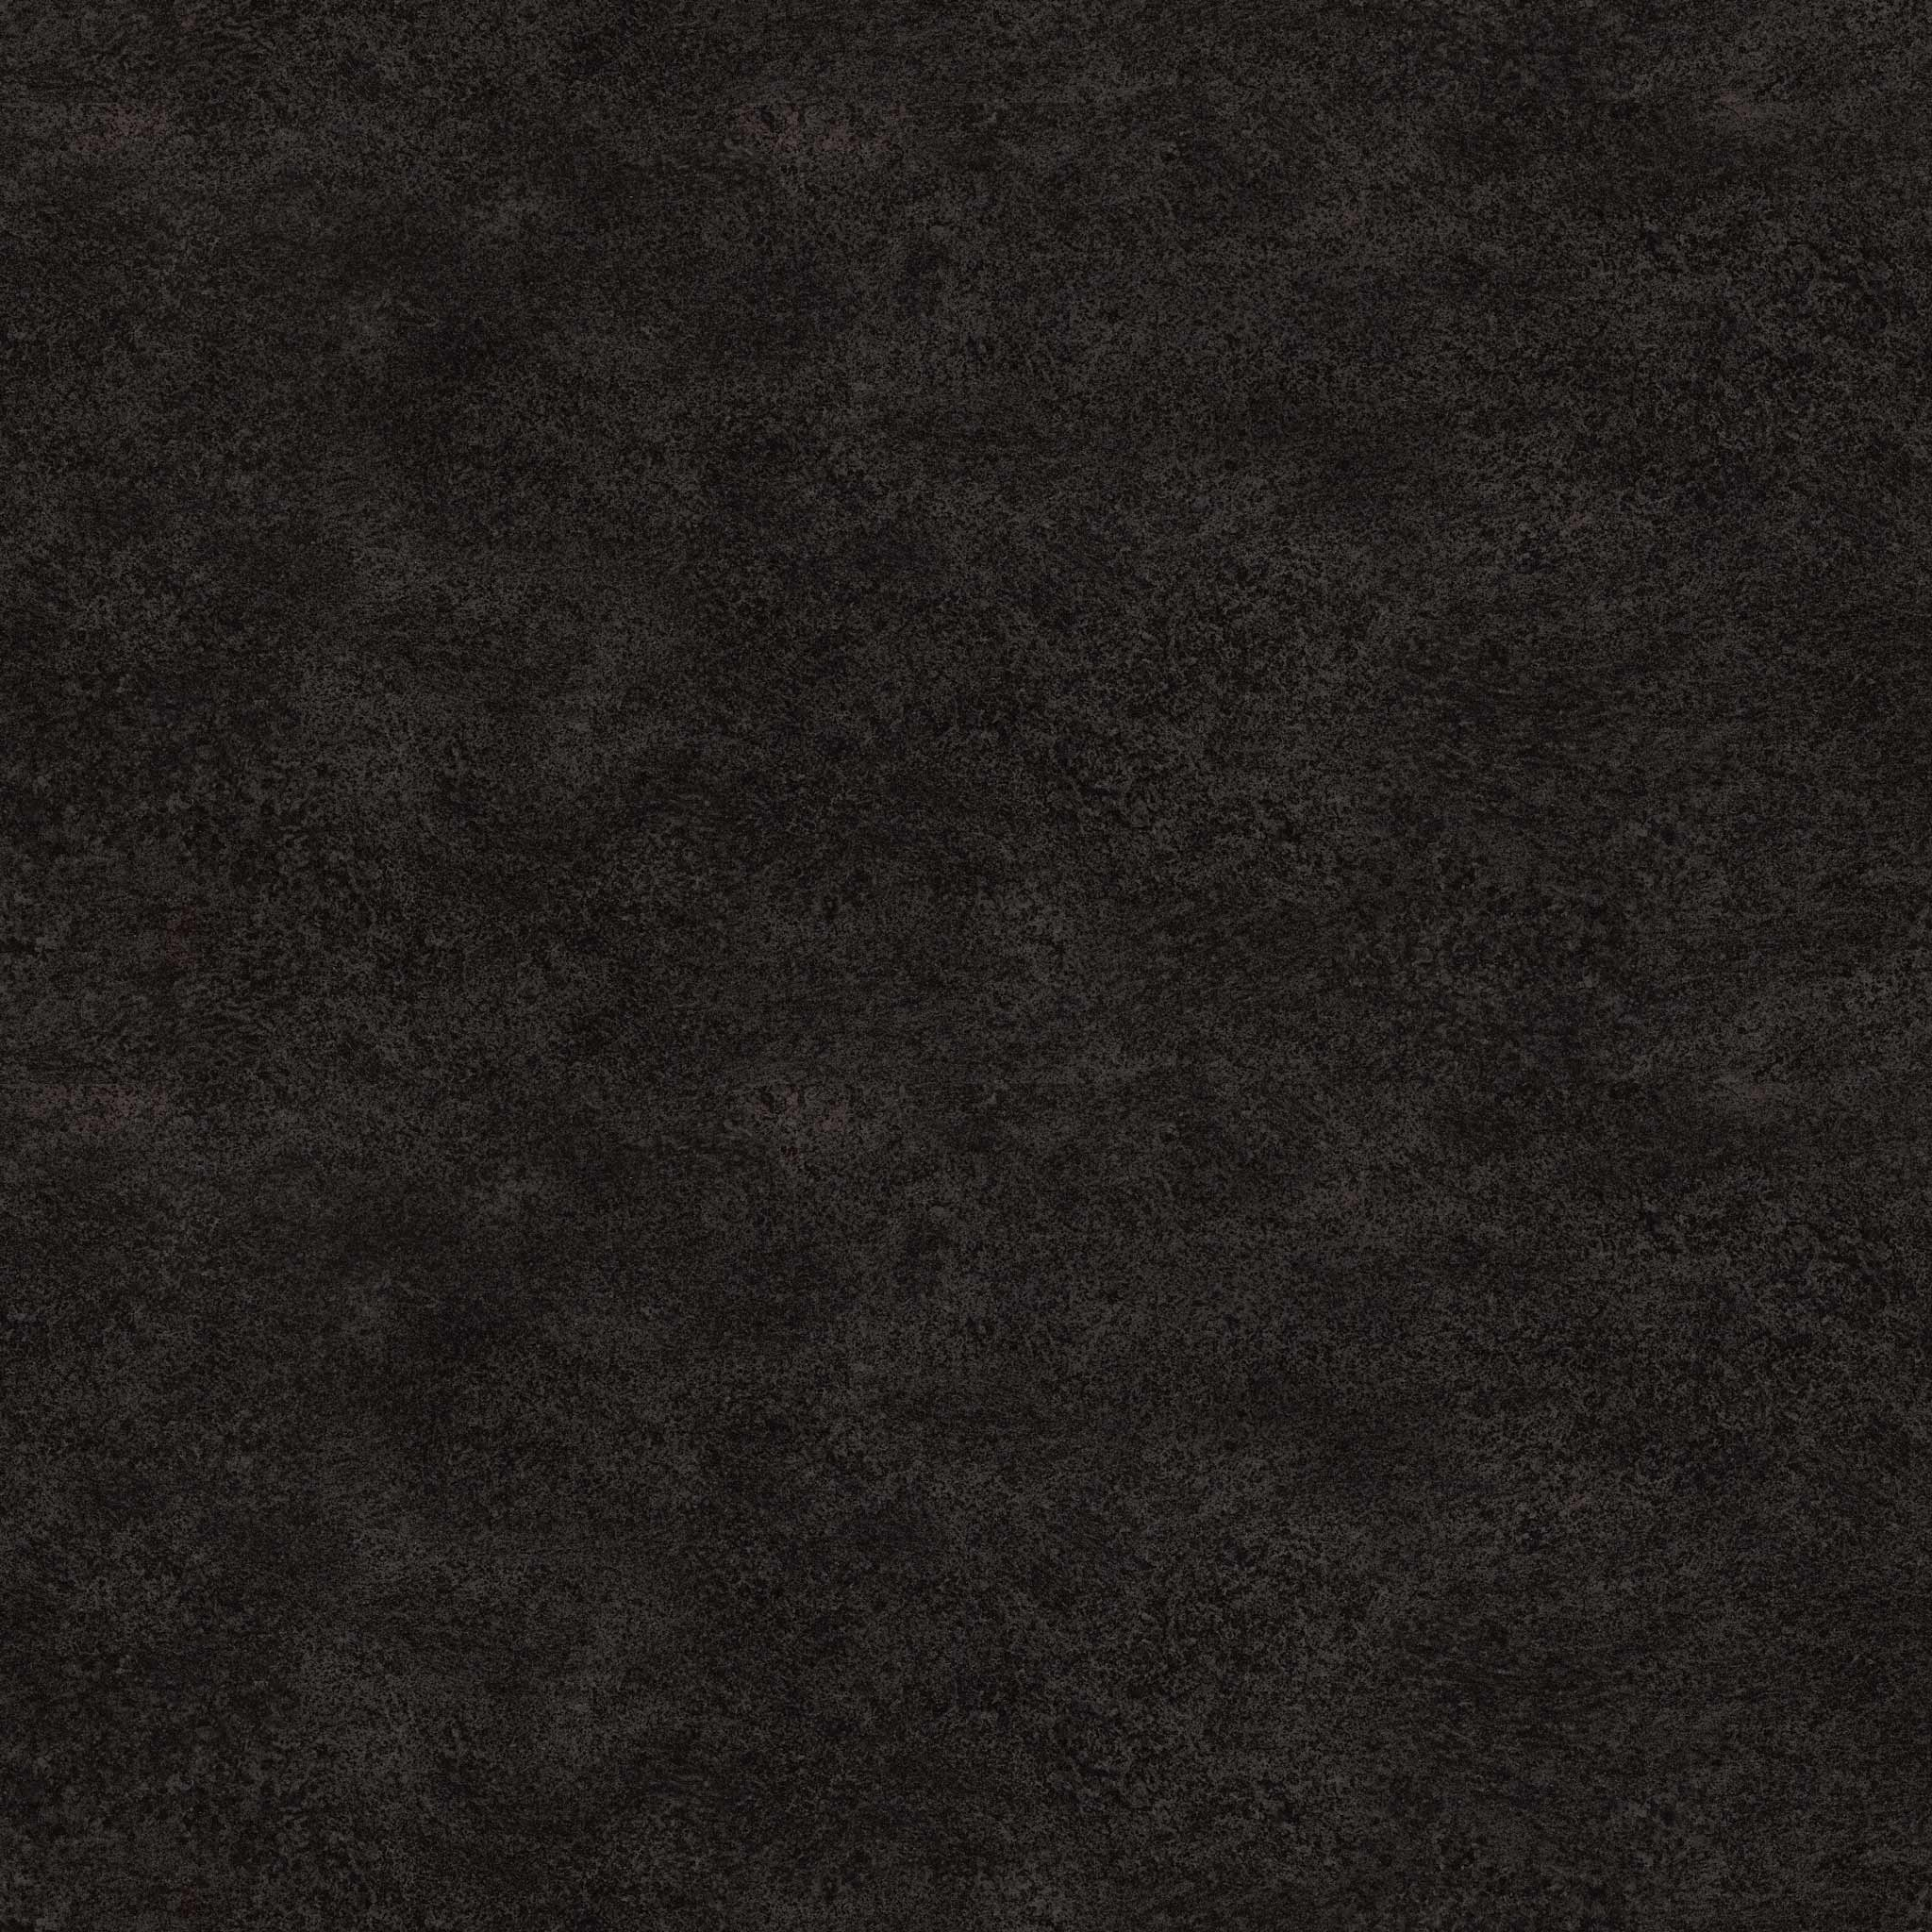 Egger Contemporary Black Granite kitchen worktop sample.